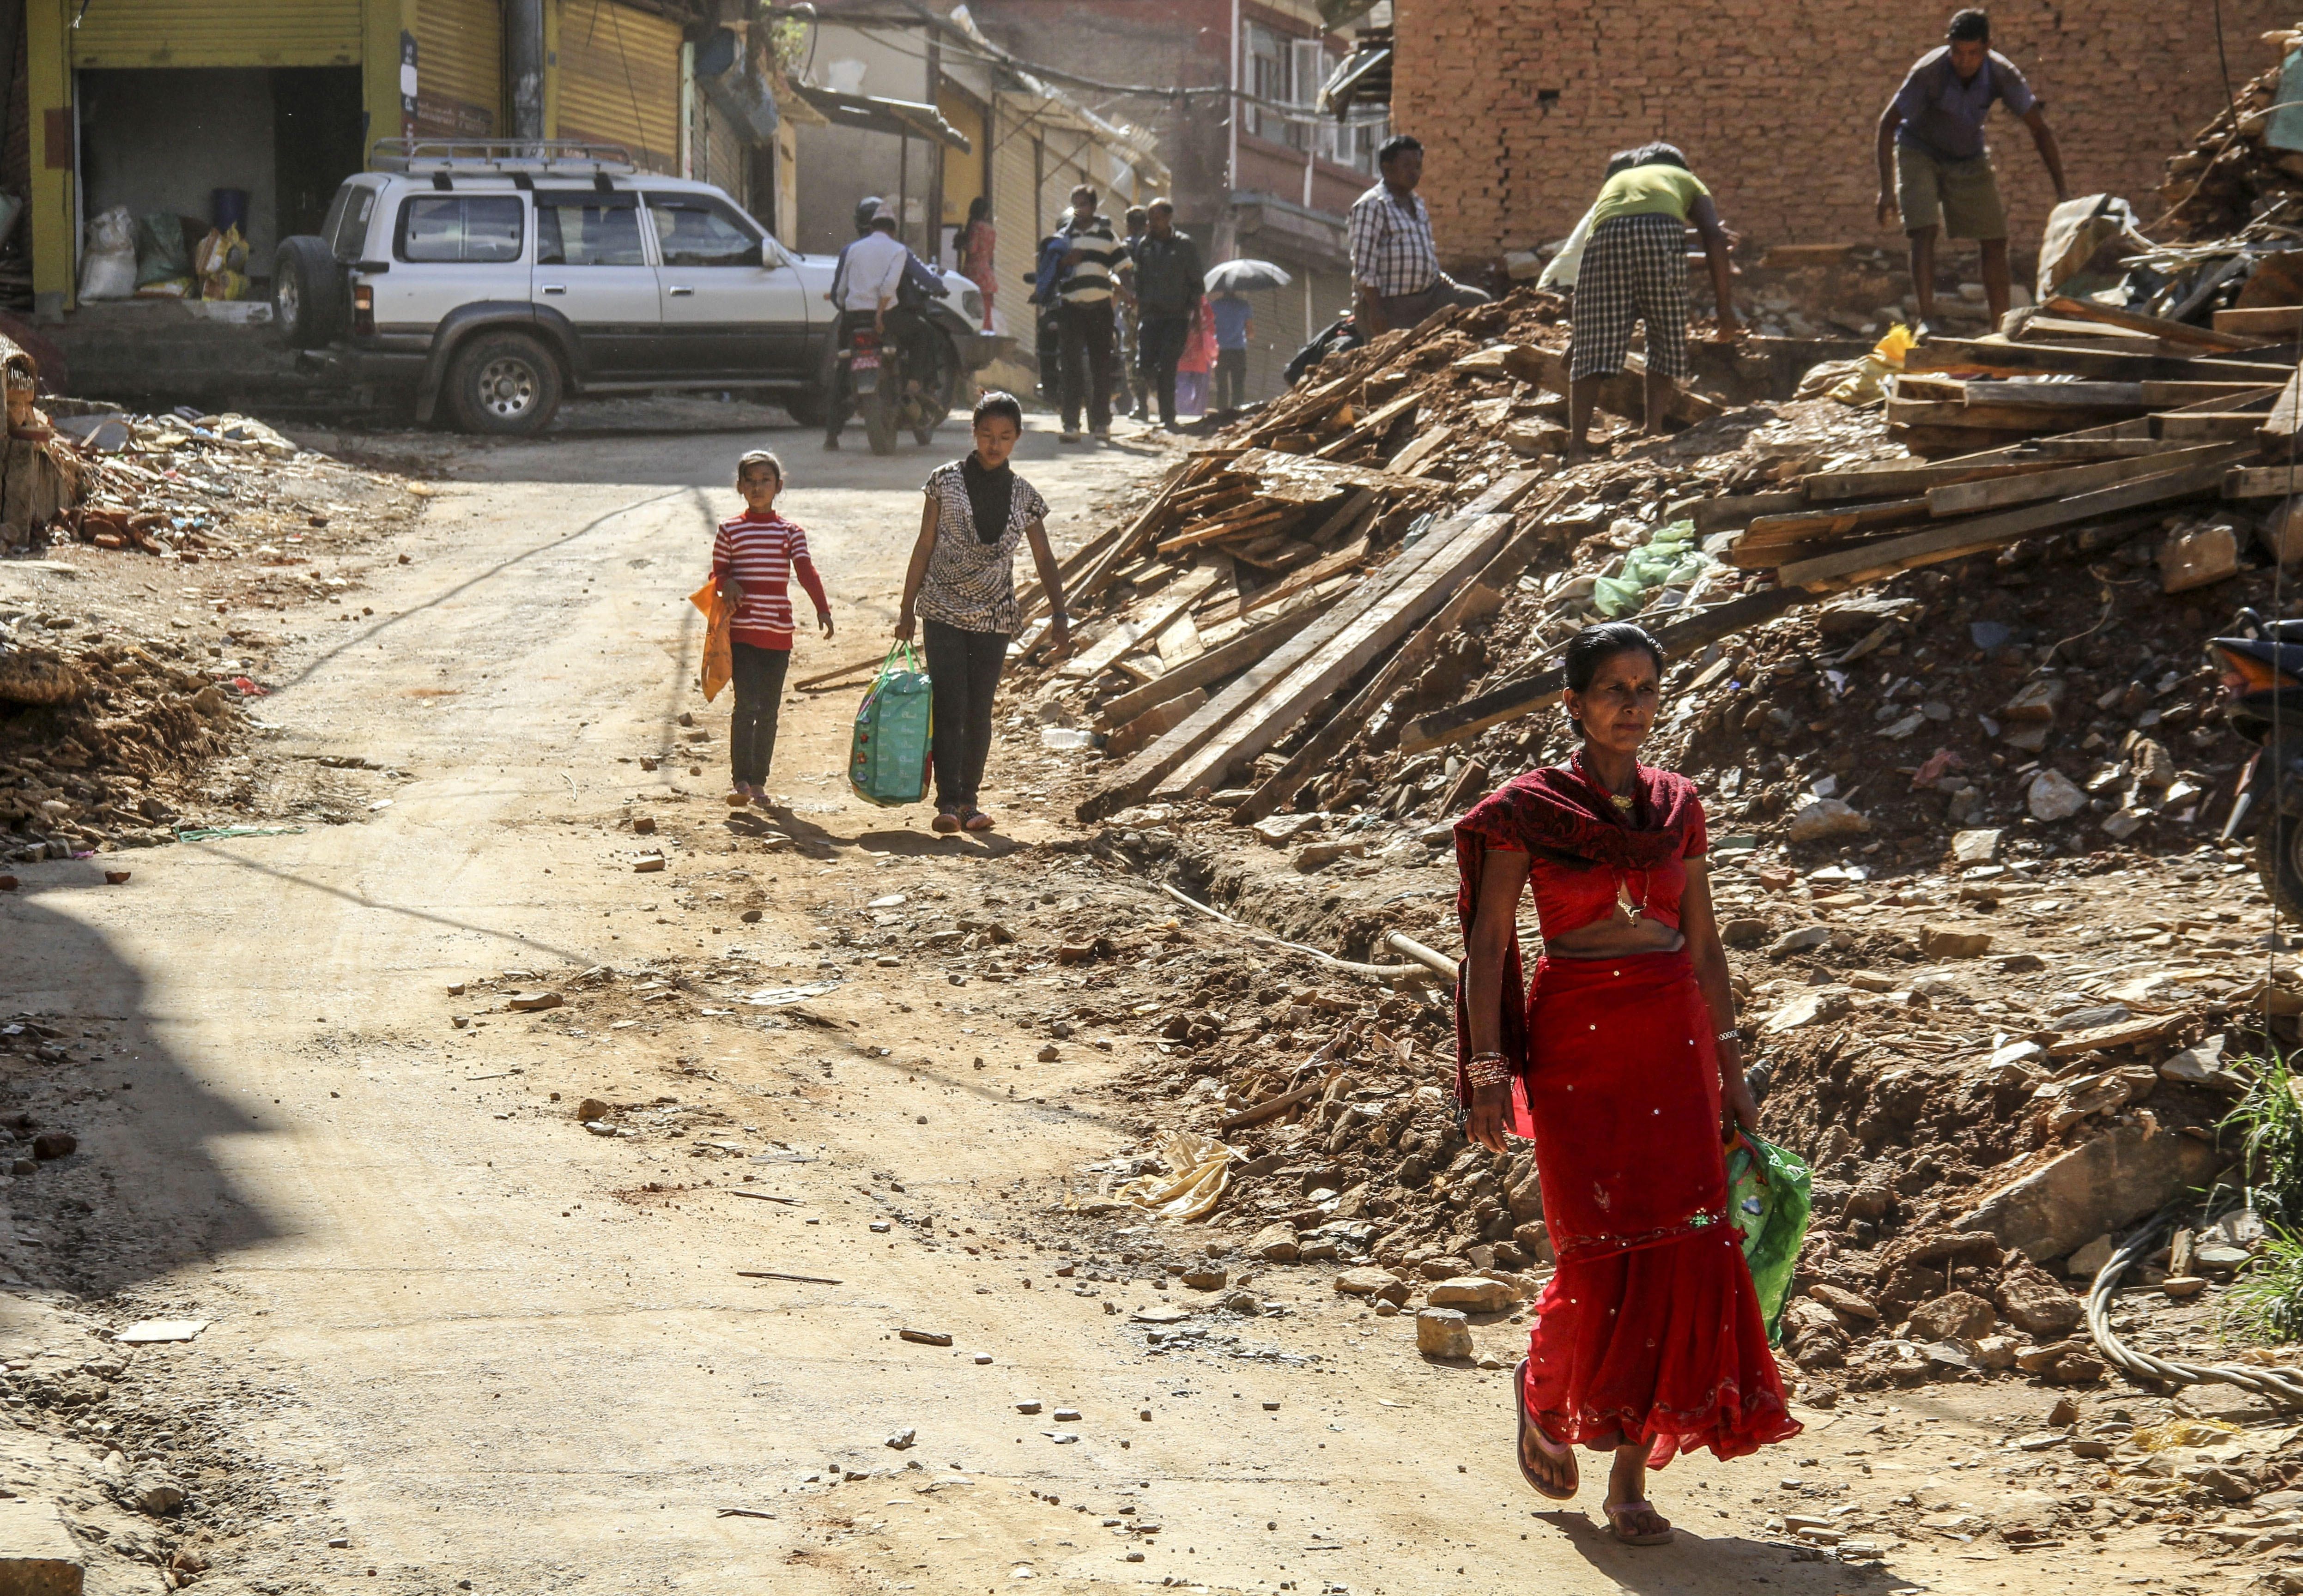 Nepali people walk amid the debris of destroyed houses in Sindhupalchowk, Nepal, on June 17, 2015